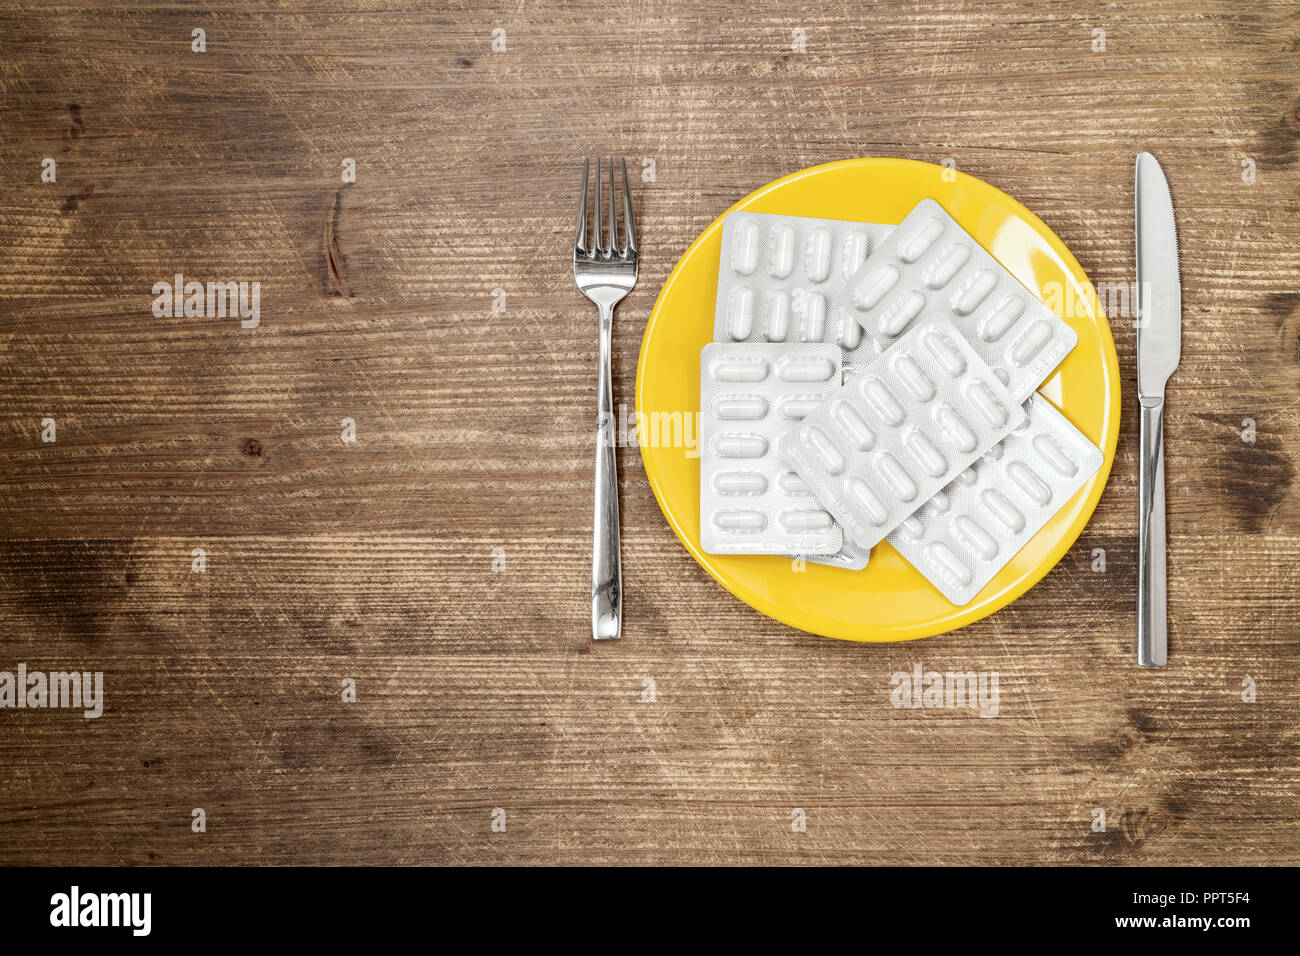 Pills ,drugs ,tablets,pharmaceutical on plate with fork and knife Stock Photo